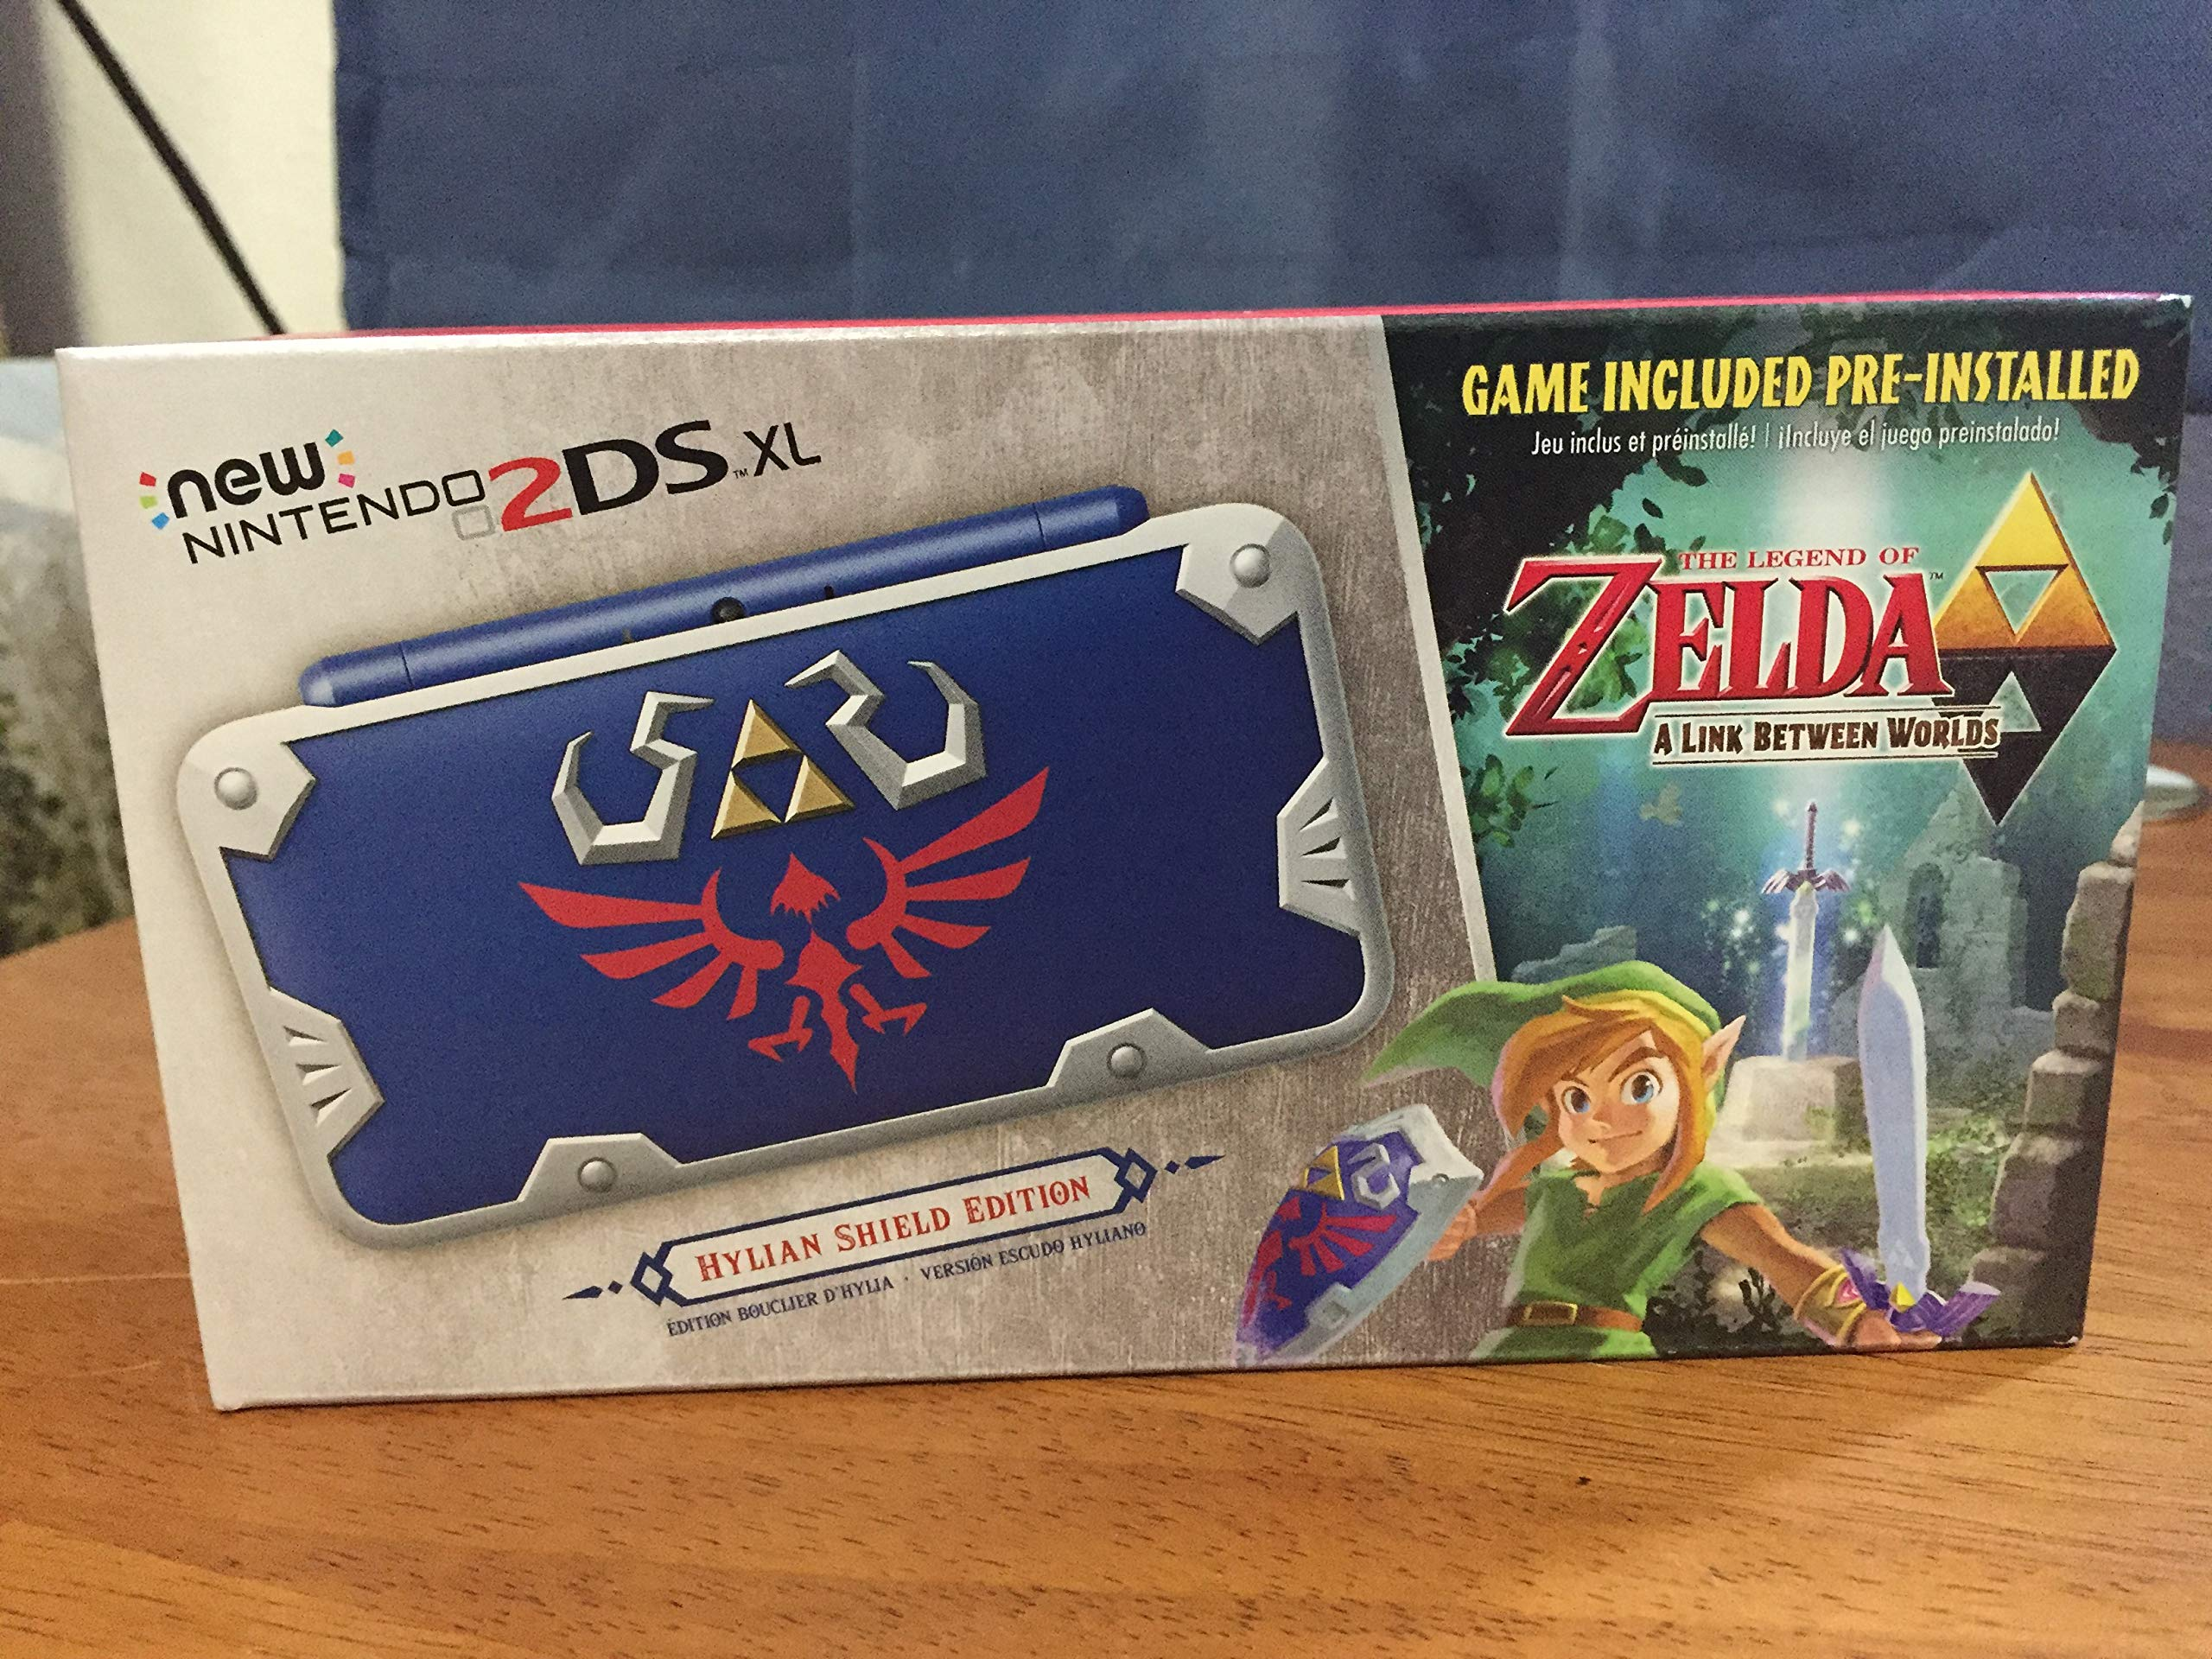 New Nintendo 2DS XL Hylian Shield Ed., w/ Legend of Zelda: A Link Between Worlds